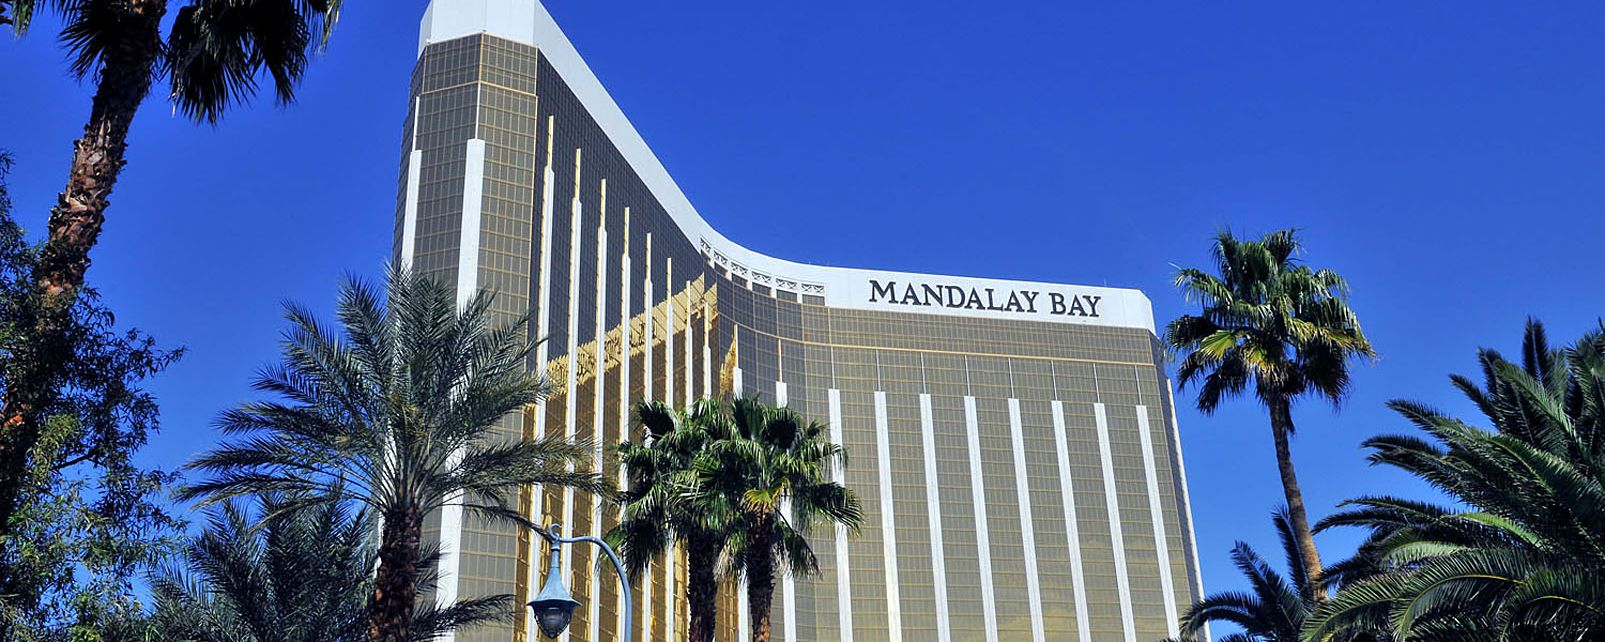 Hotel Mandalay Bay Resort And Casino